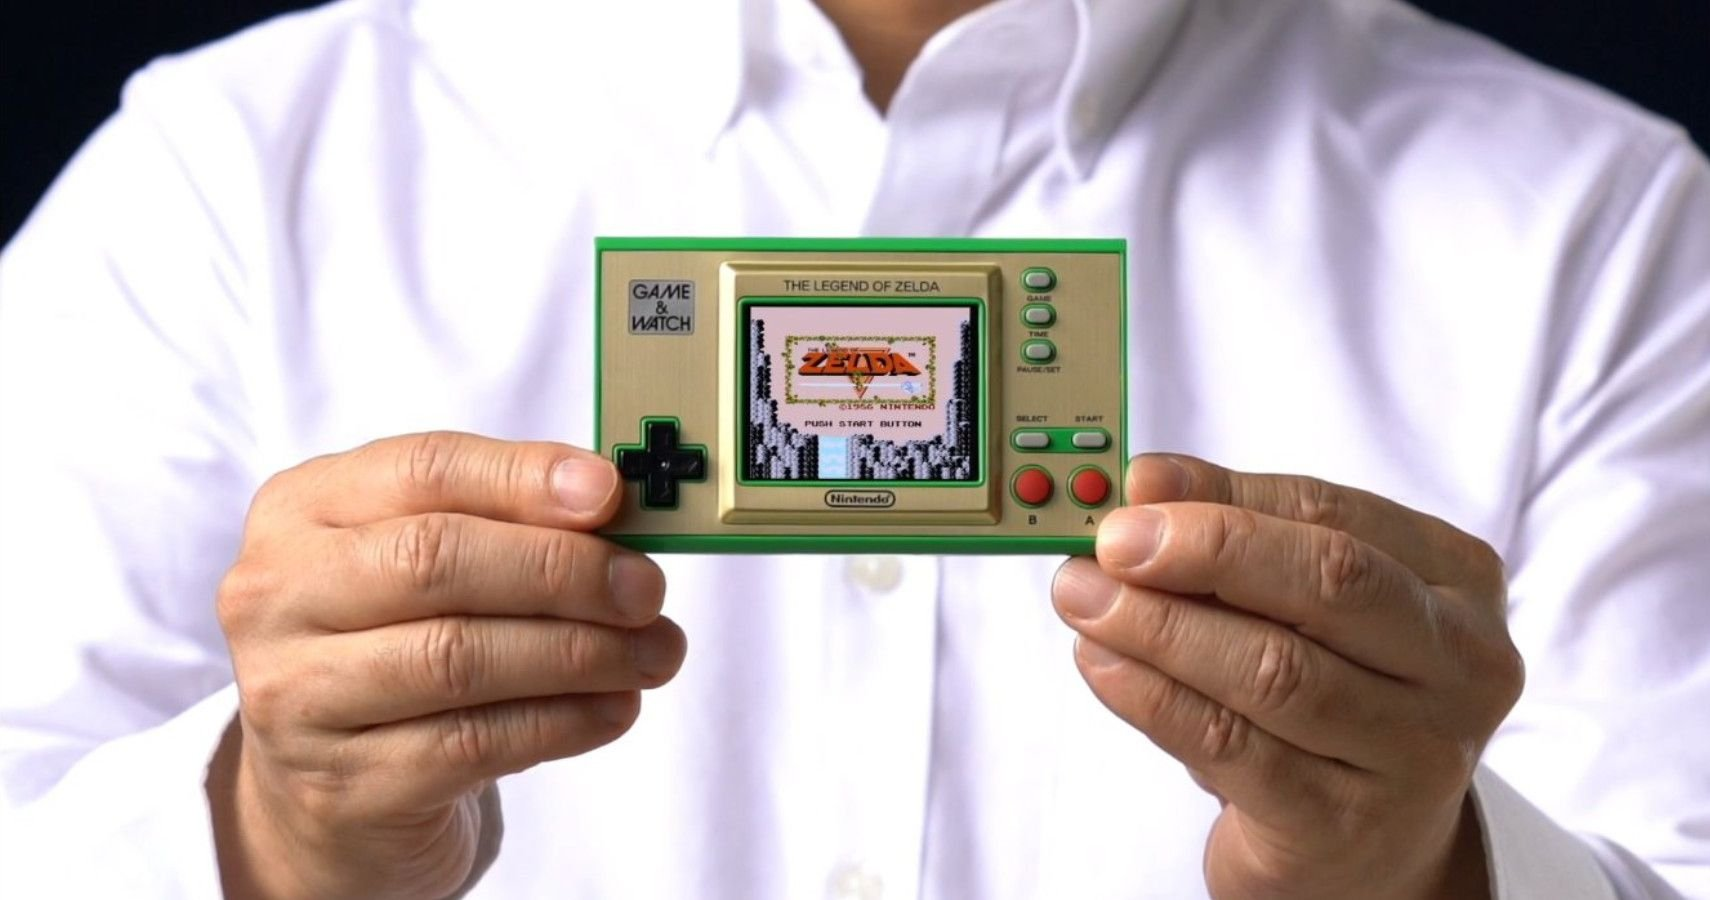 Nintendo Is Releasing A Zelda-Themed Game And Watch System, Includes Three Classic Zelda Games